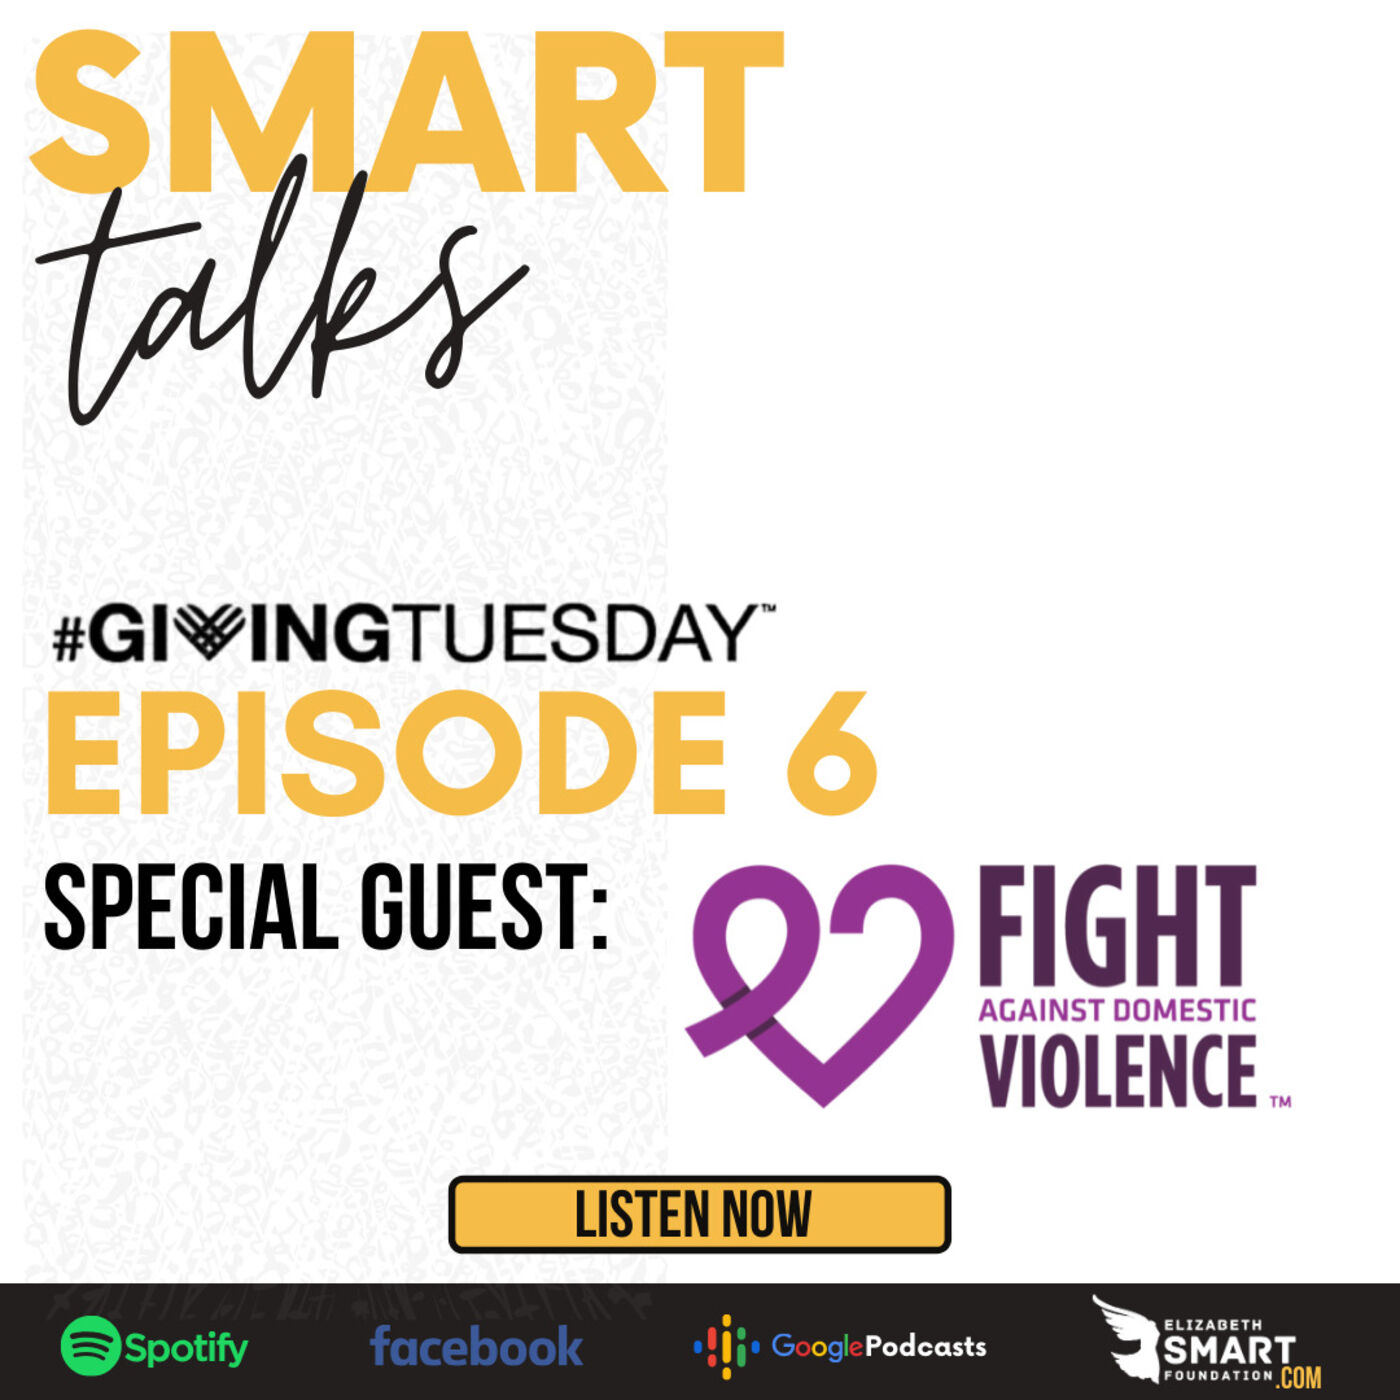 Episode 6: Giving Tuesday Special Guest, Fight Against Domestic Violence